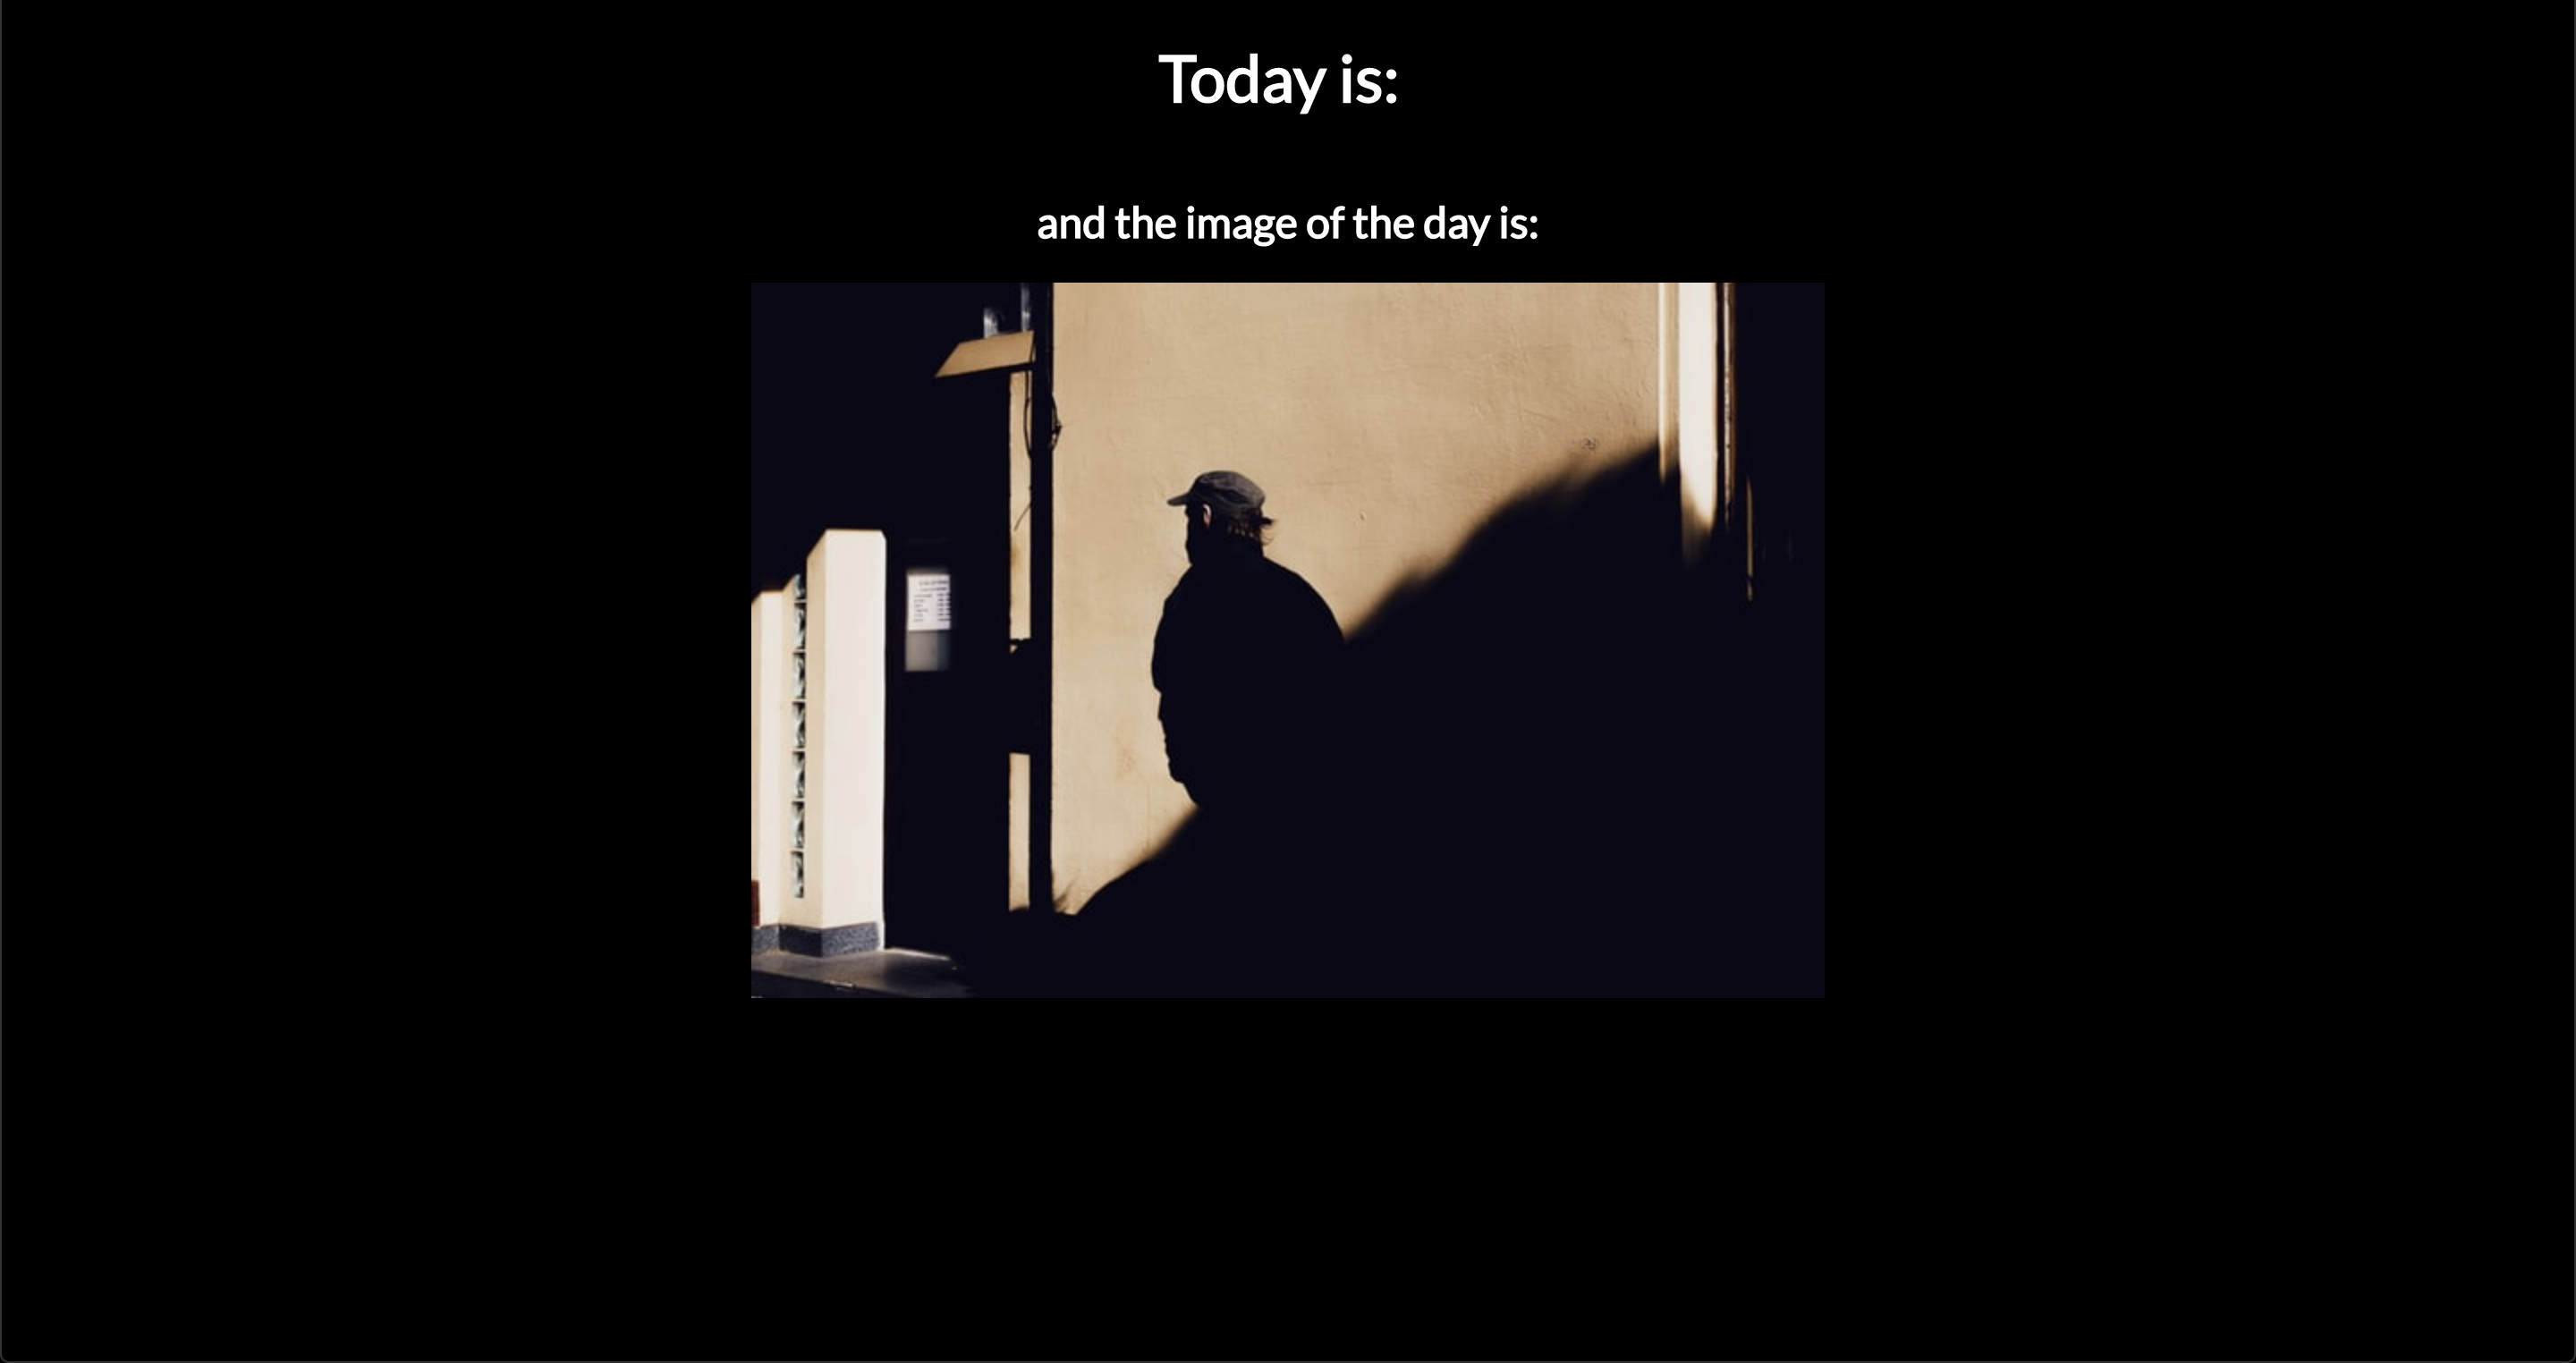 Webpage with black background, a heading and an image